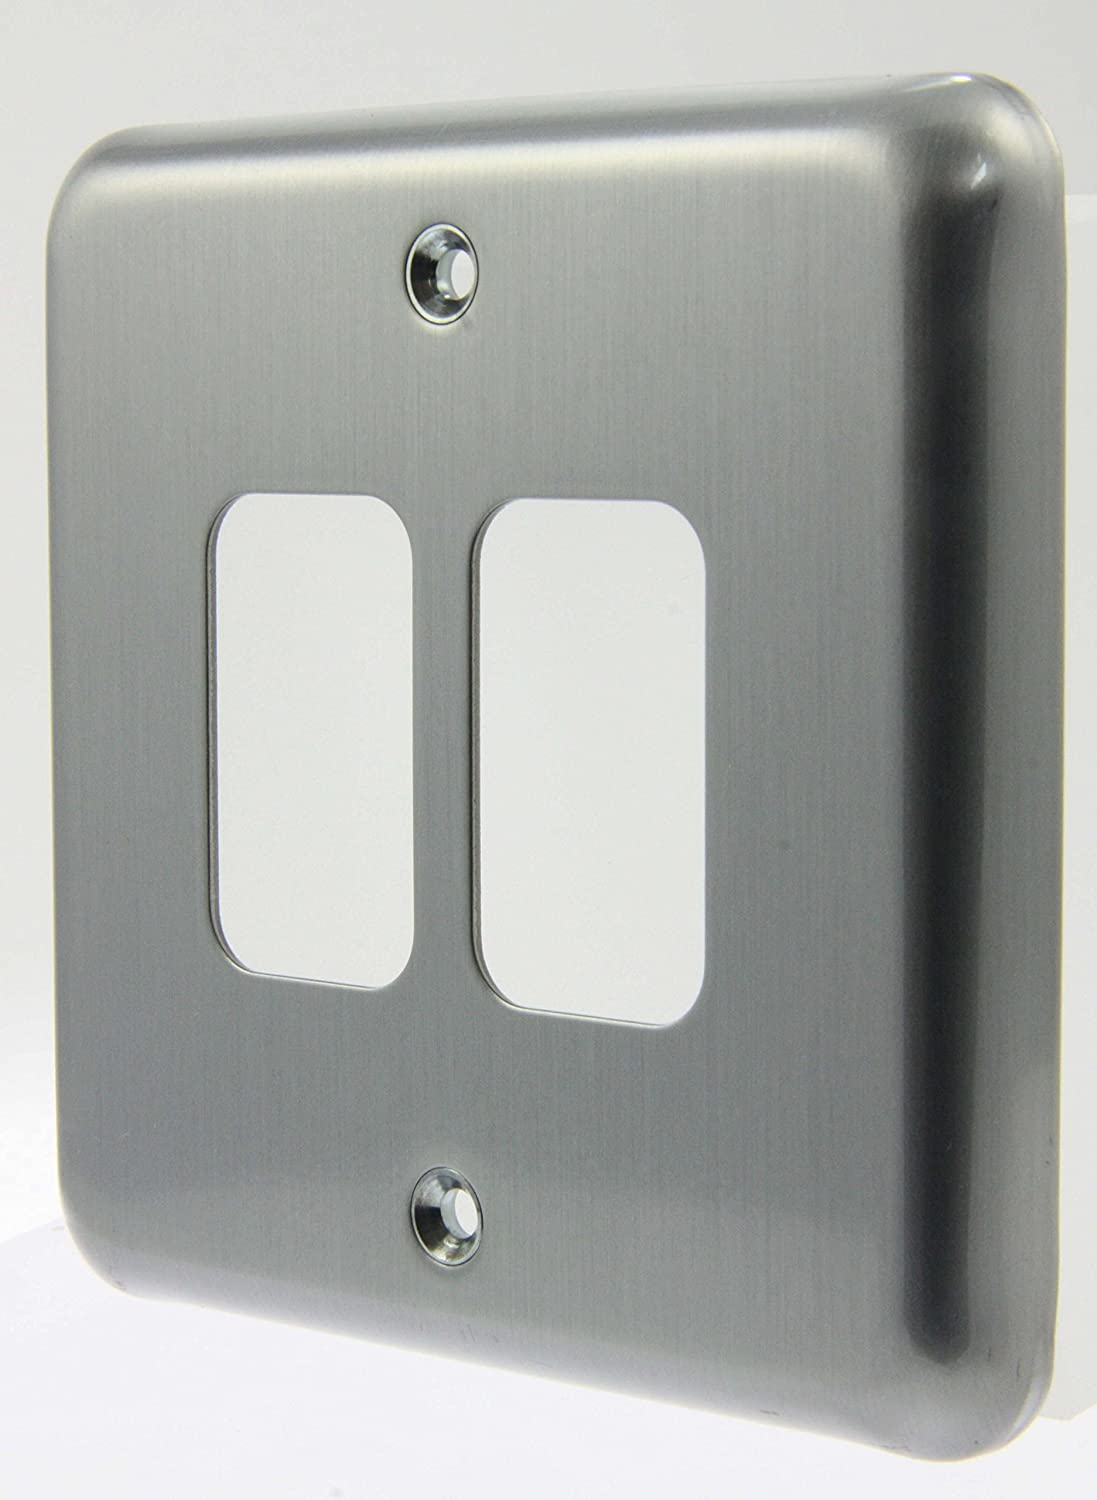 K3432 MCO 2 Modual Grid Switchplate New MK Albany//Grid Plus